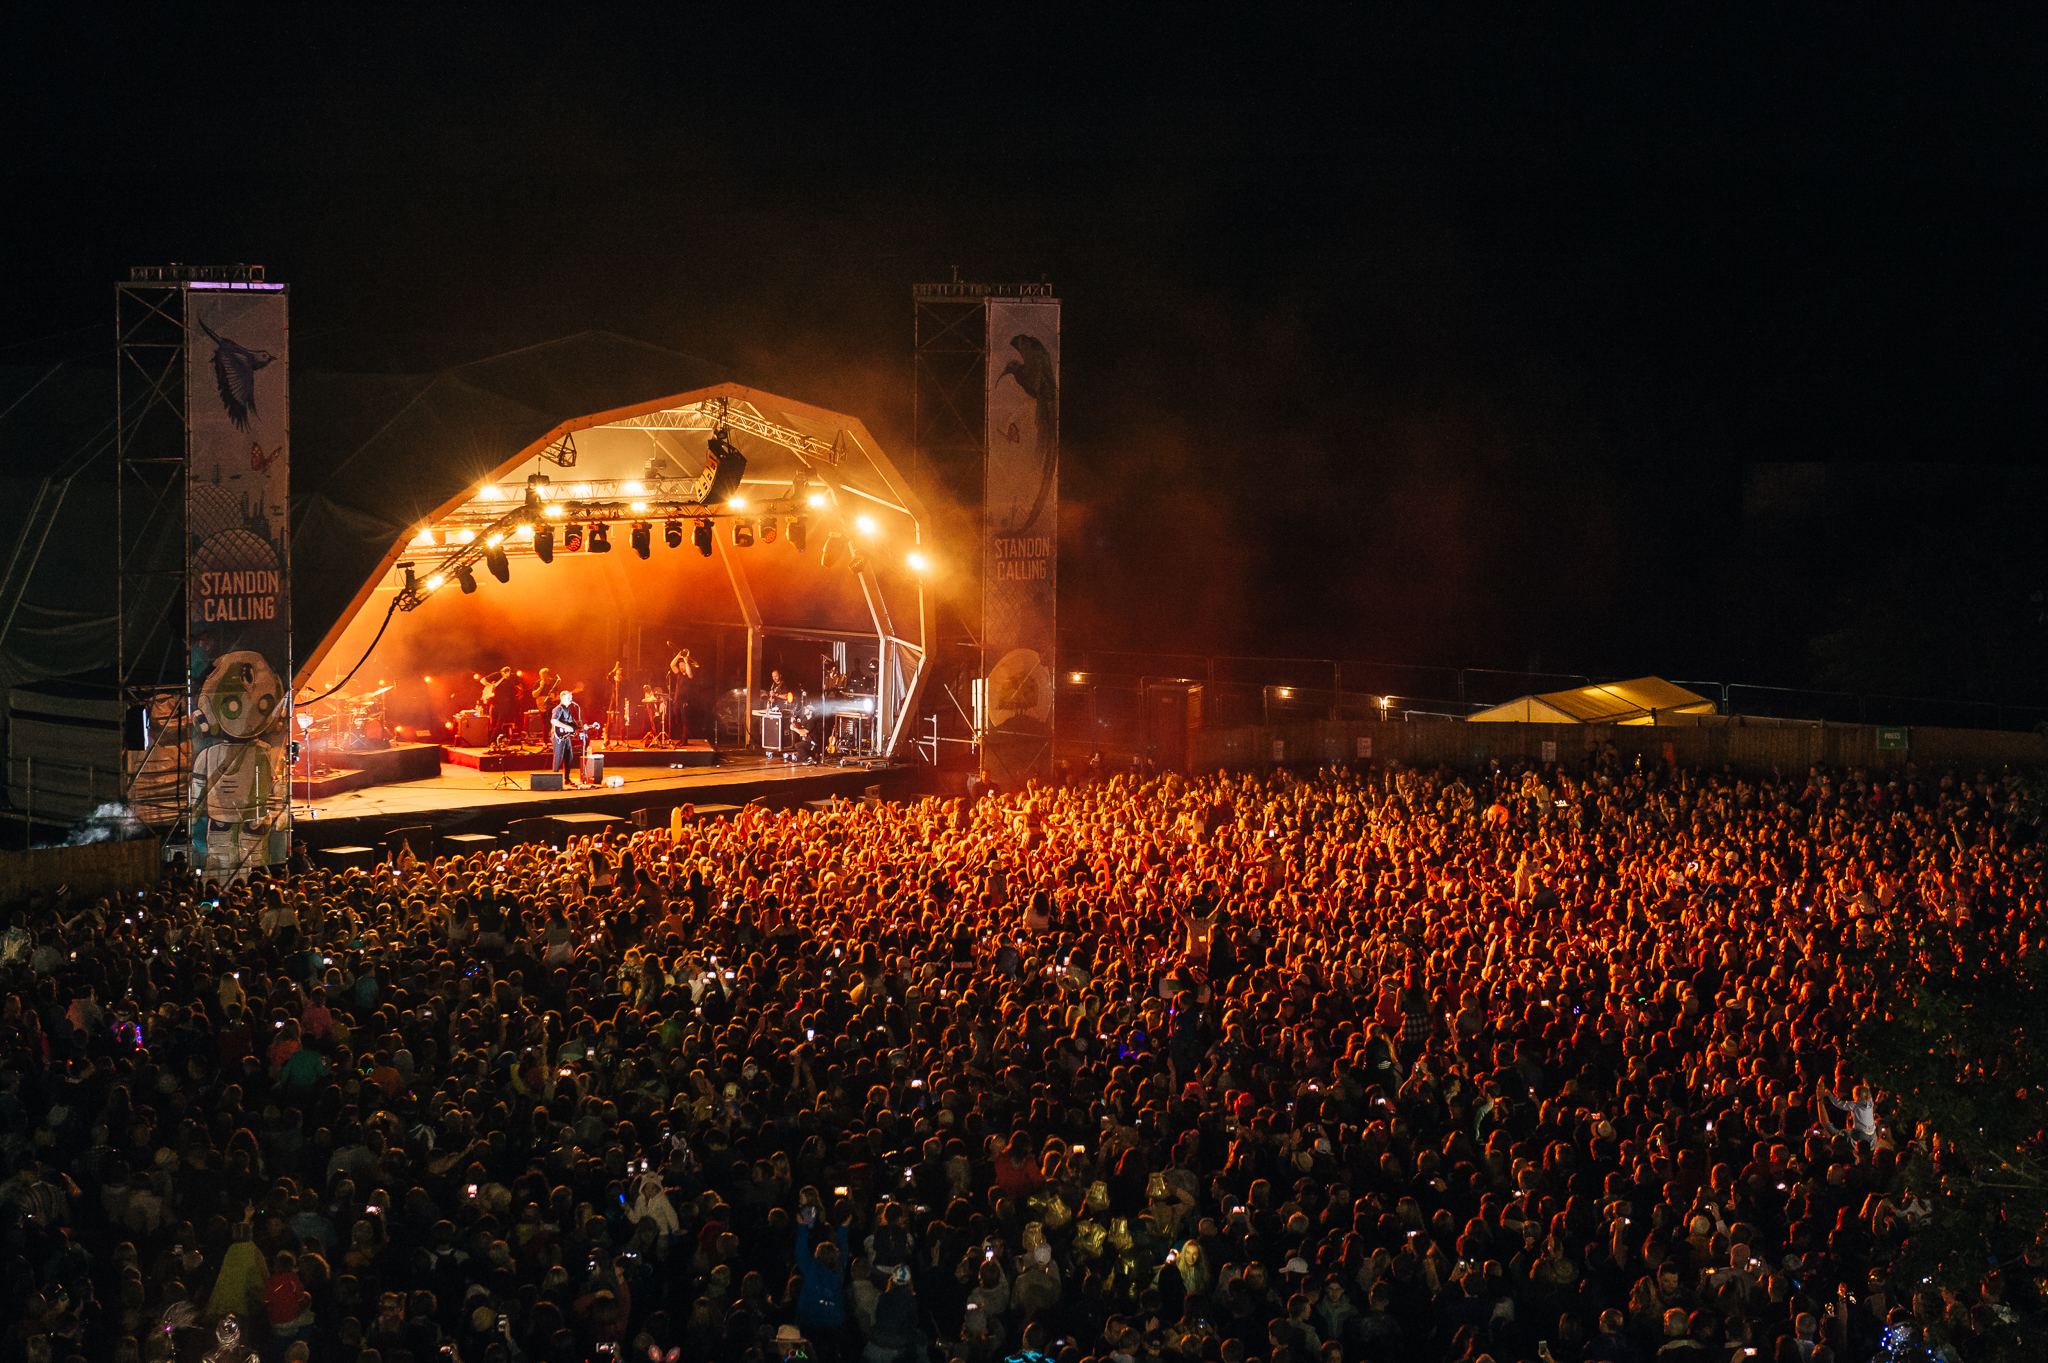 Friendly Fires announced as special guests for Standon Calling, joining Nile Rodgers, Wolf Alice and Rag'n'Bone Man